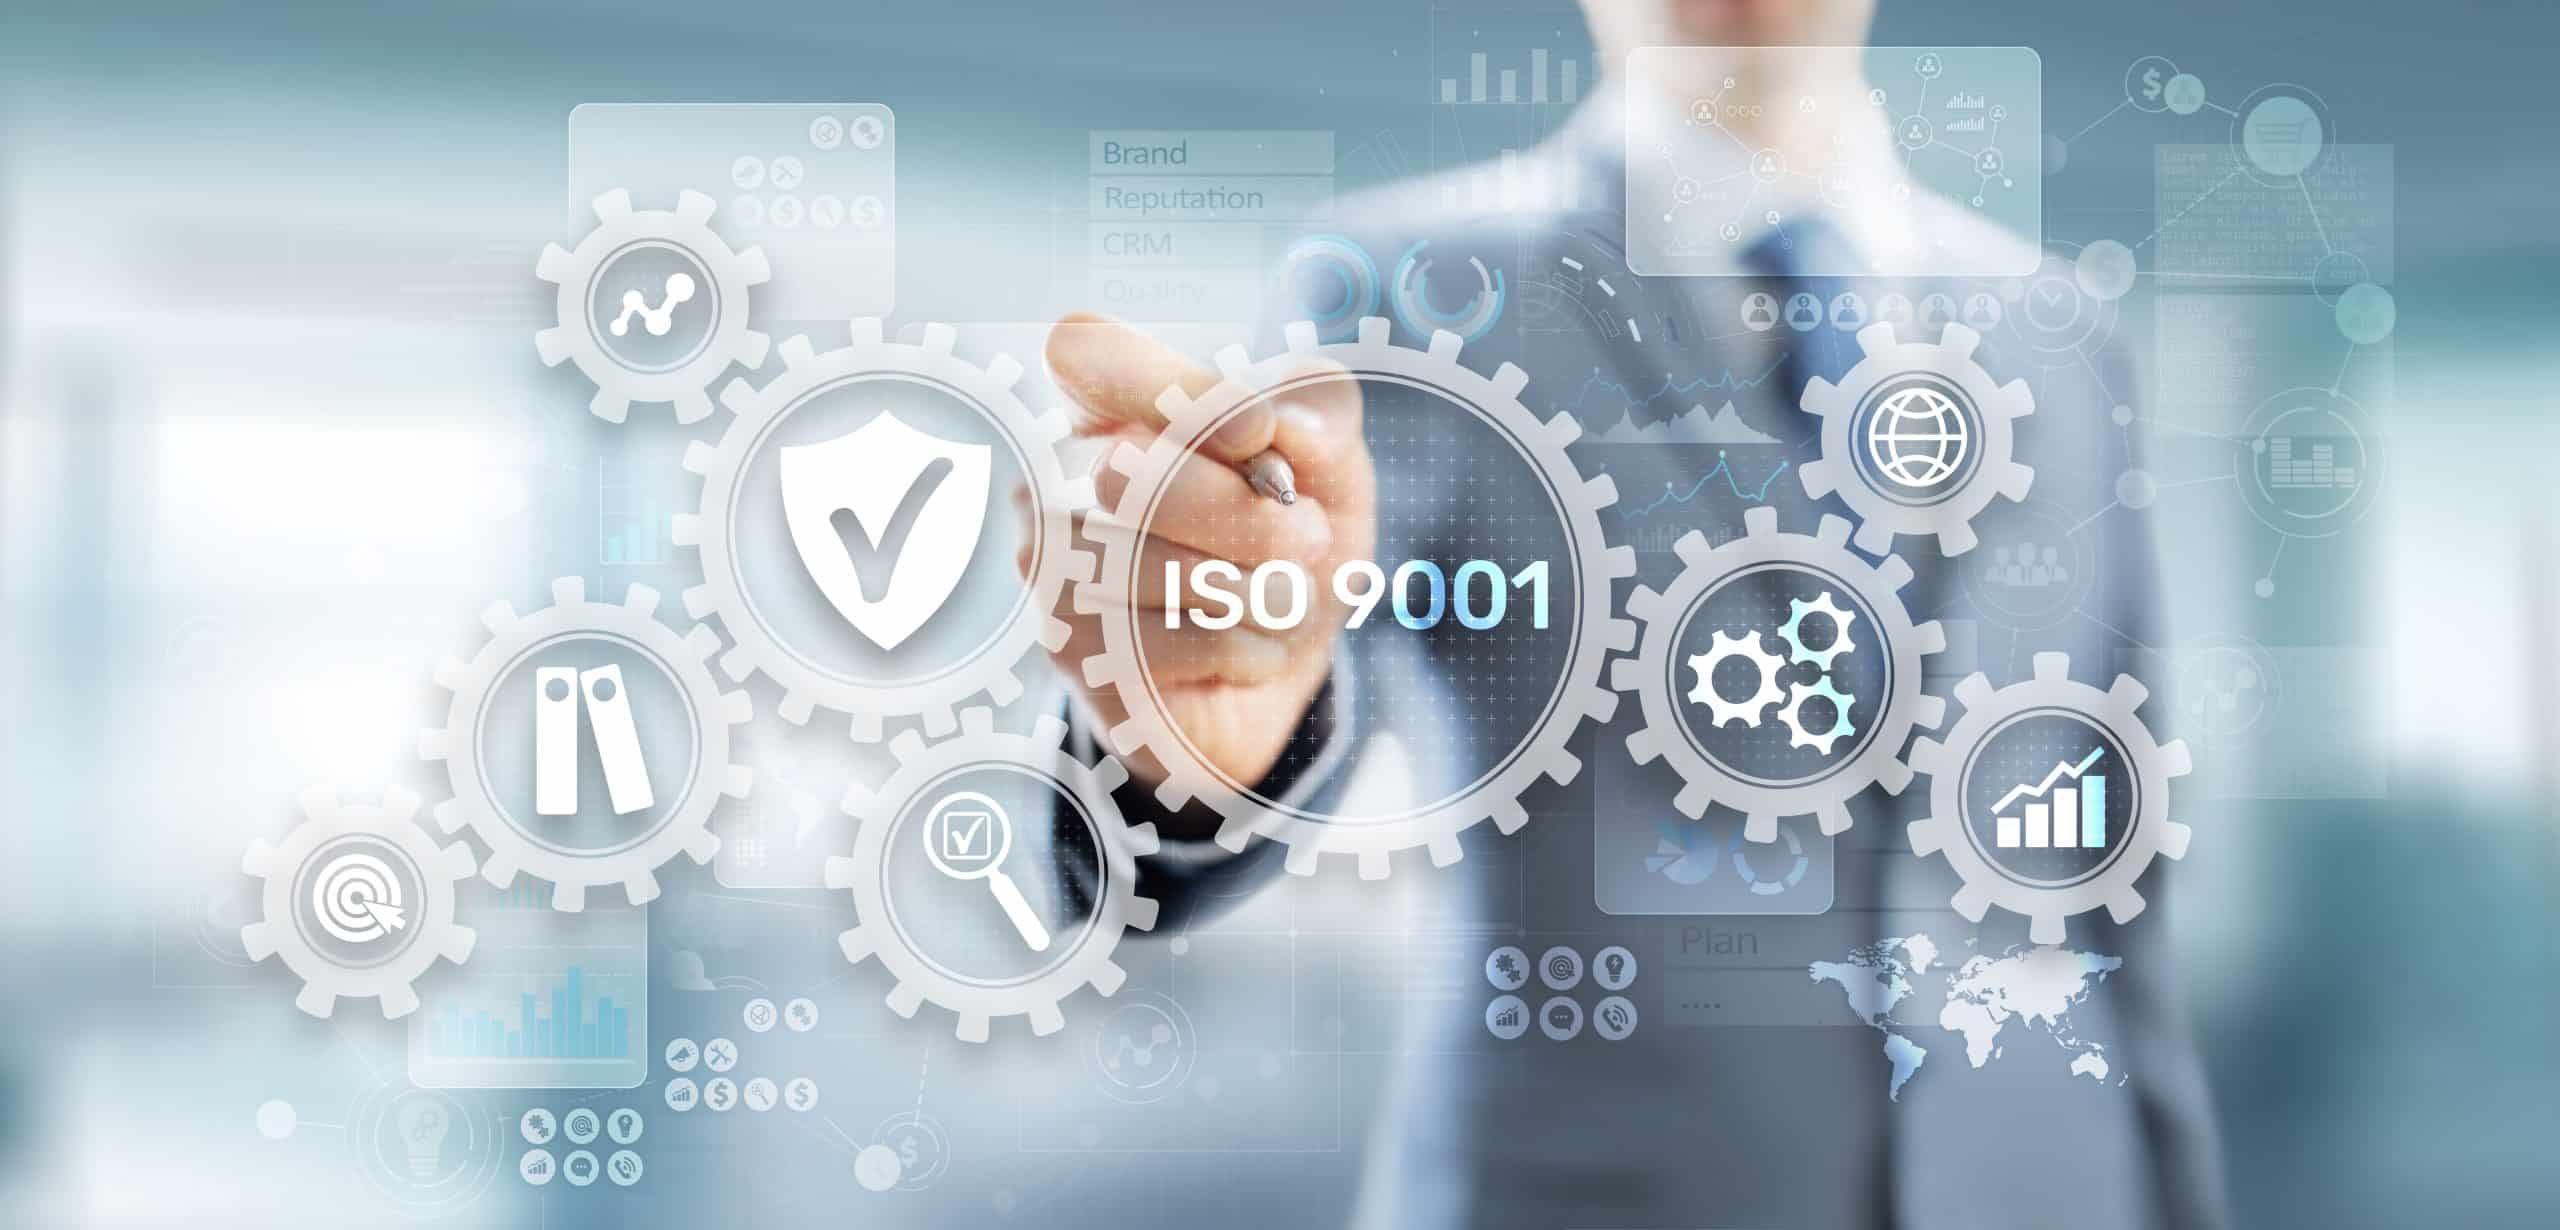 ISO 9001 Standards quality control business technology concept on virtual screen